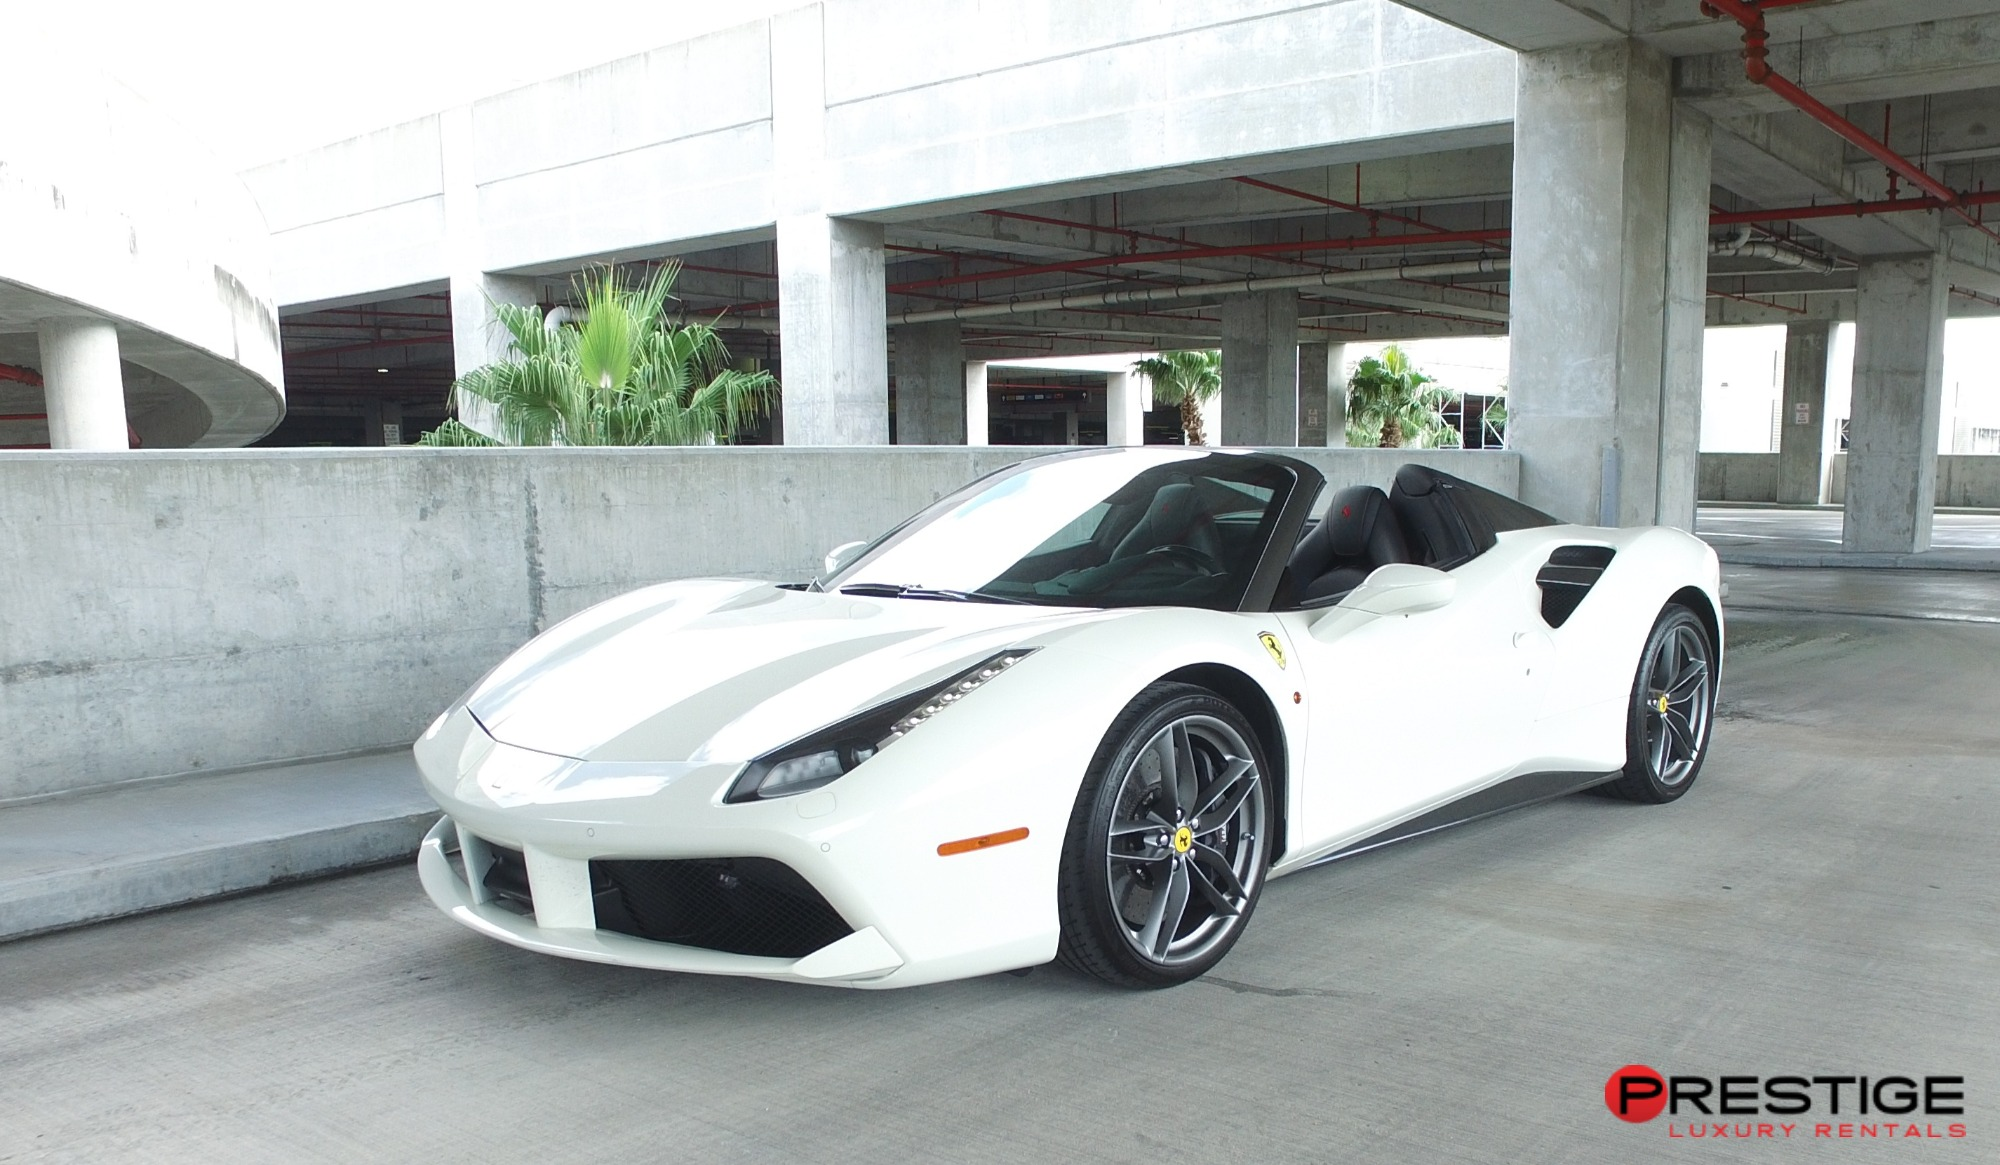 Rent A Ferrari 488 Spider Rental In Miami Available In Miami Airports And Miami Beach Exotic And Luxury Car Rentals